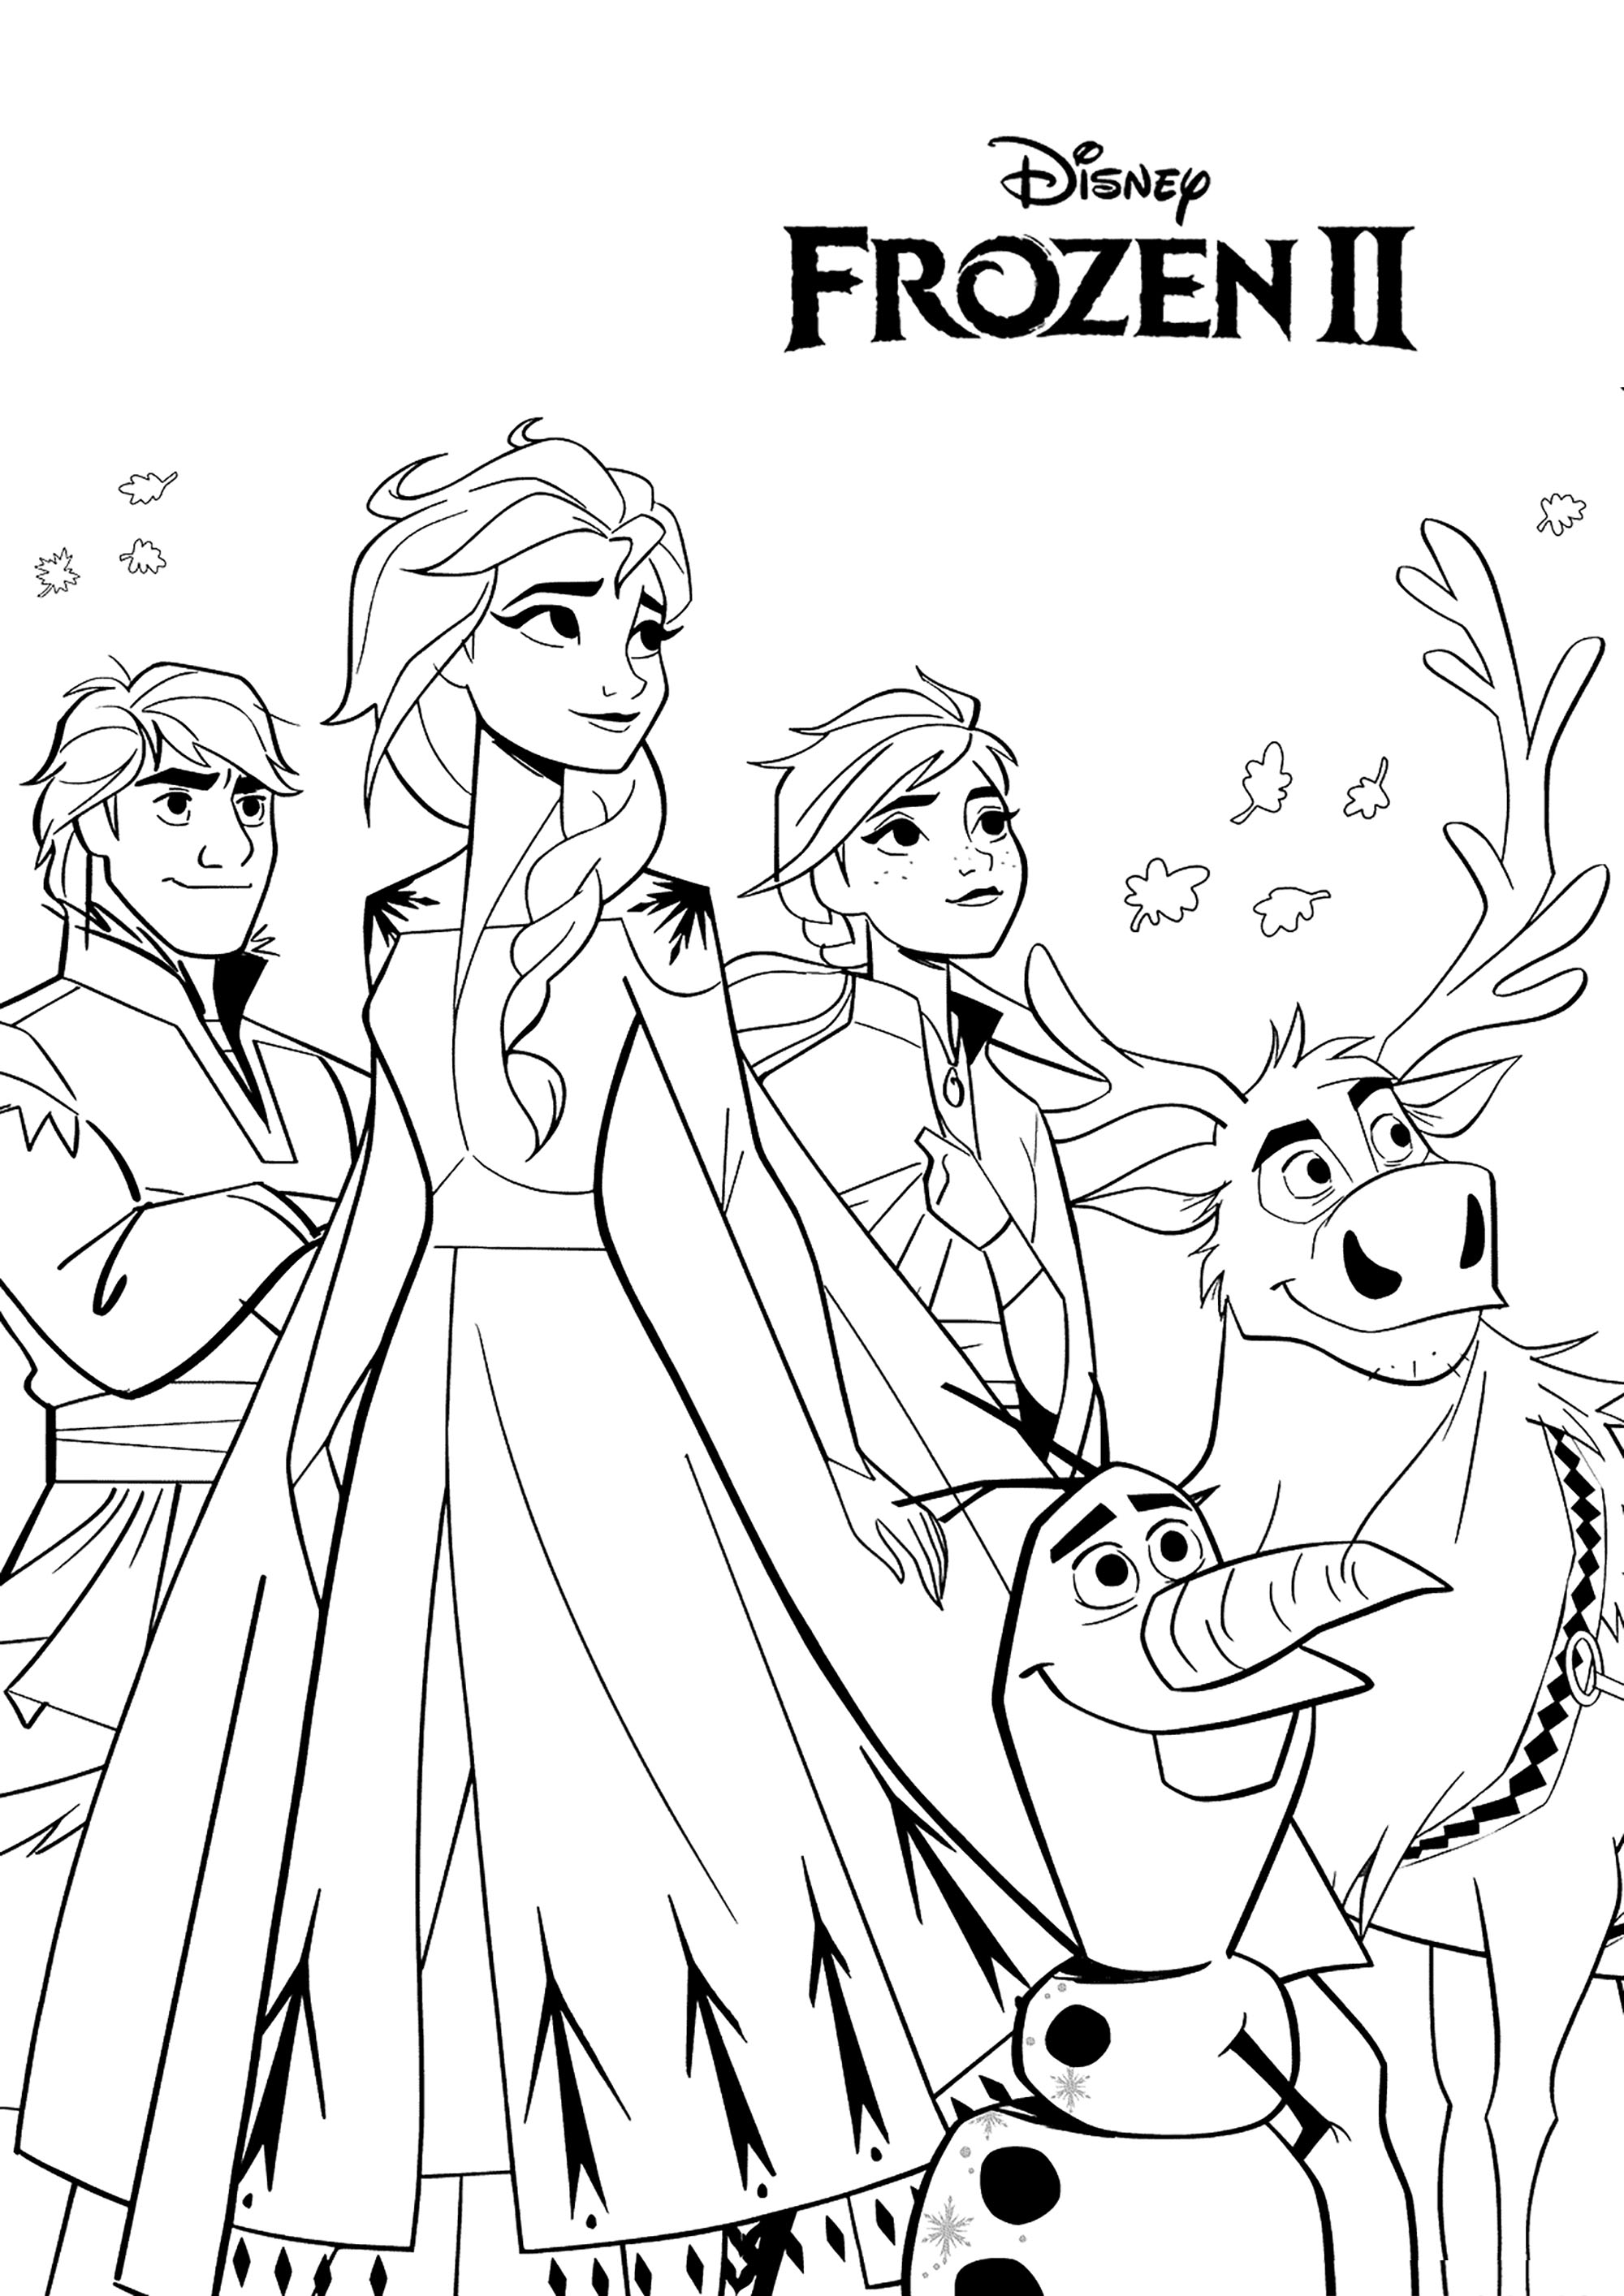 frozen coloring new frozen 2 coloring pages with elsa youloveitcom frozen coloring